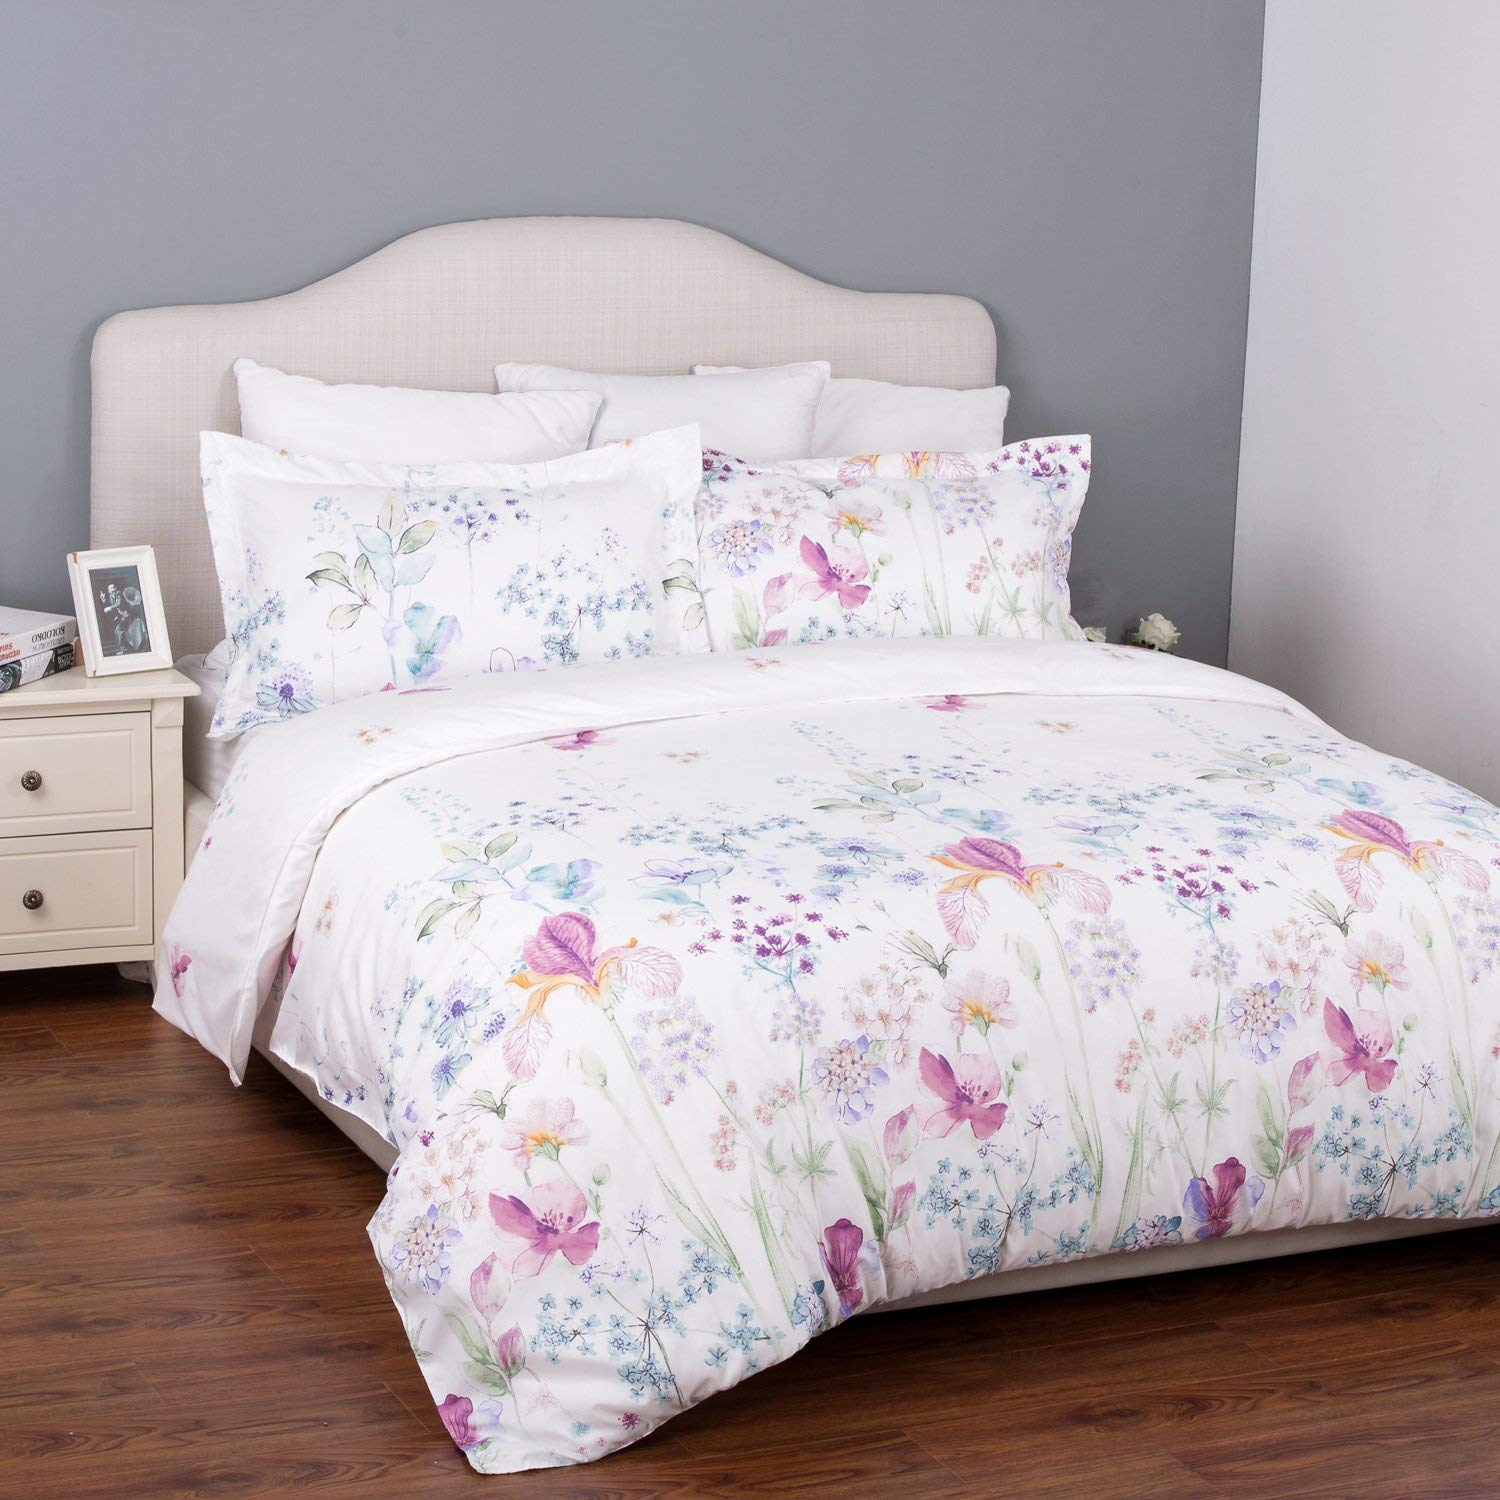 duvet cover Only two color(White/ Purple/ Blue;Cream/ Grey)